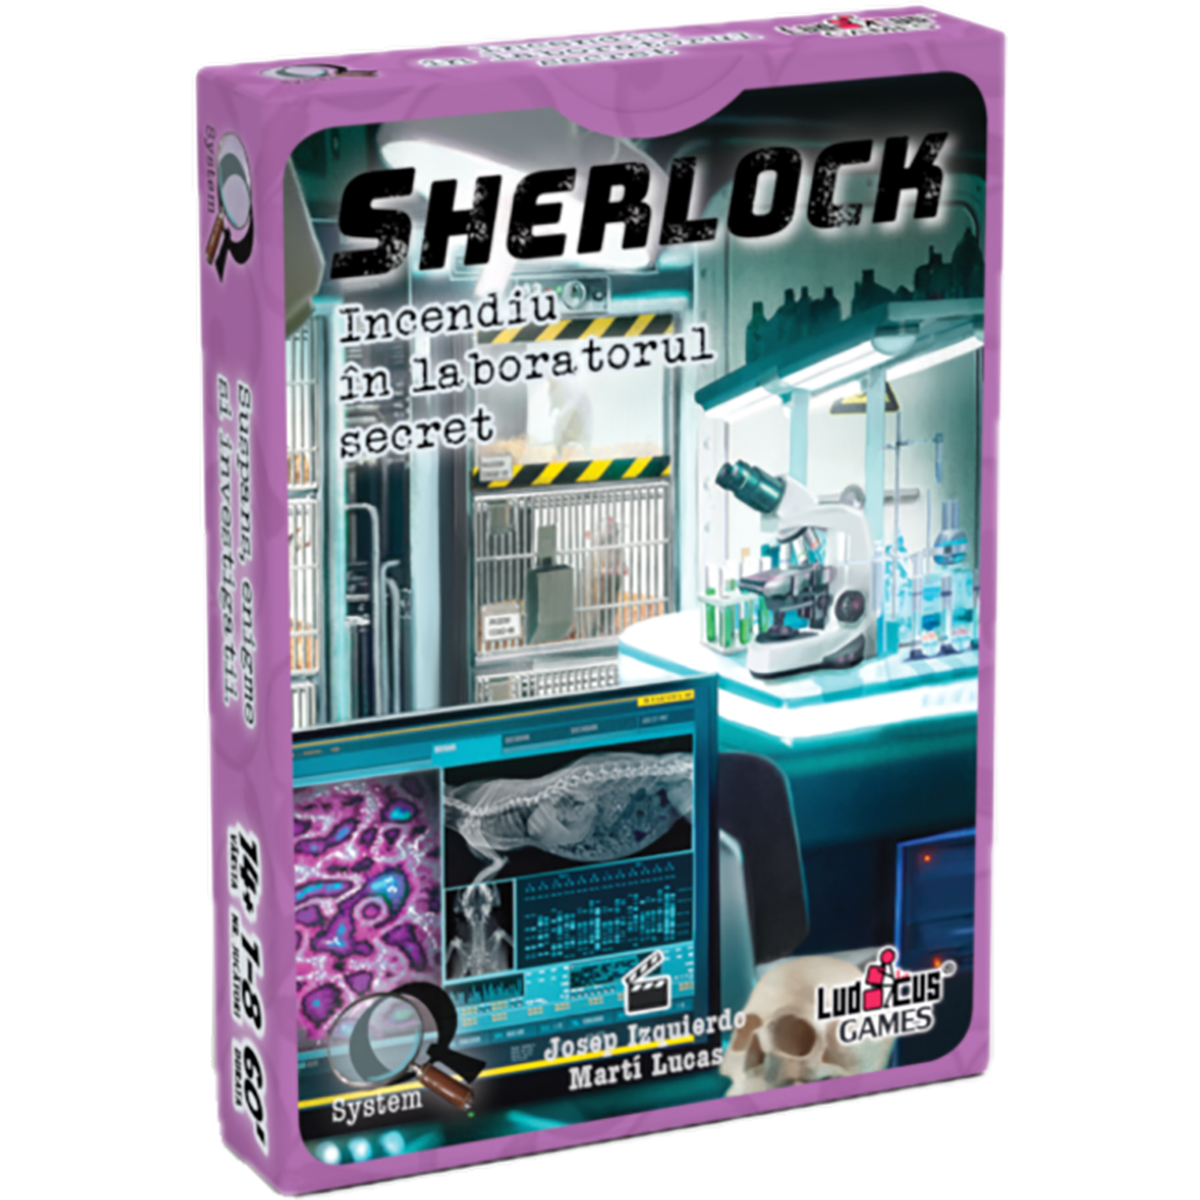 Joc de societate Enigma Studio, Sherlock, Q6 Incediu in laboratorul secret